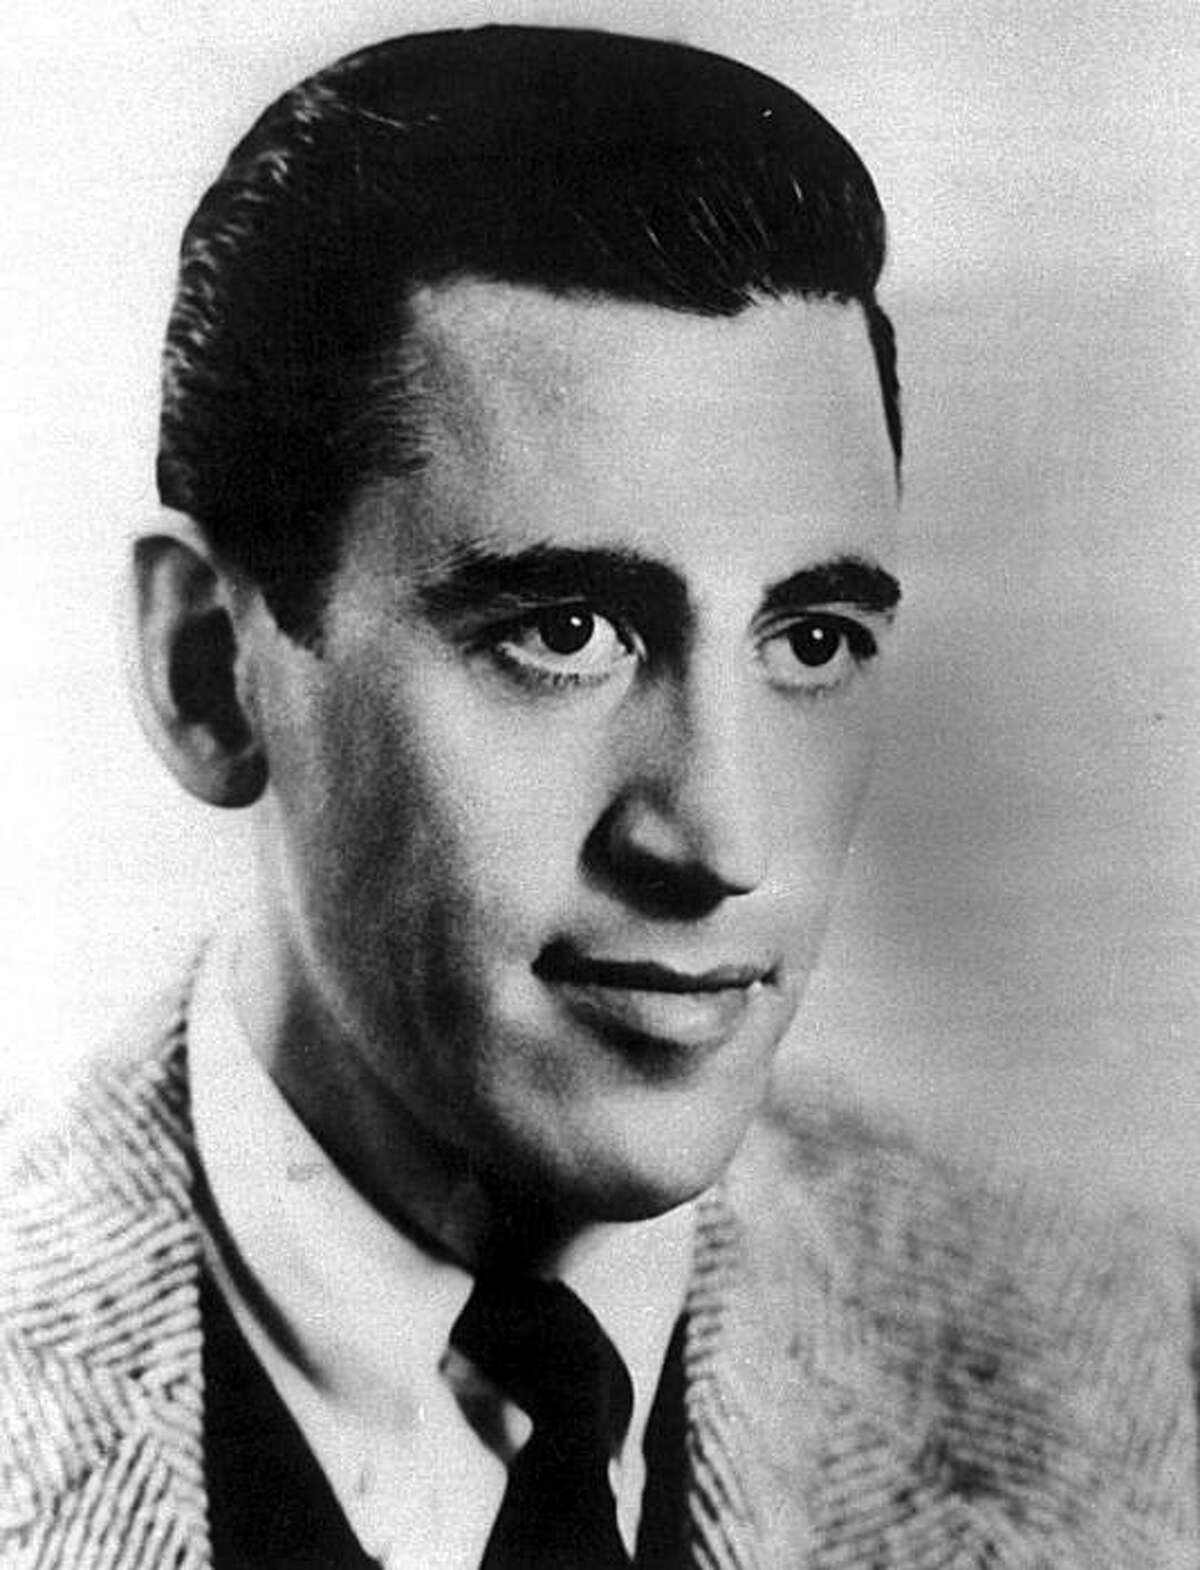 ** CAPTION ADDITION, ADDS SOURCE, BYLINE AND SECOND SENTENCE ** FILE - In this 1951 file photo taken by Lotte Jacobi and made available by The Lotte Jacobi Collection, University of New Hampshire, J.D. Salinger, author of